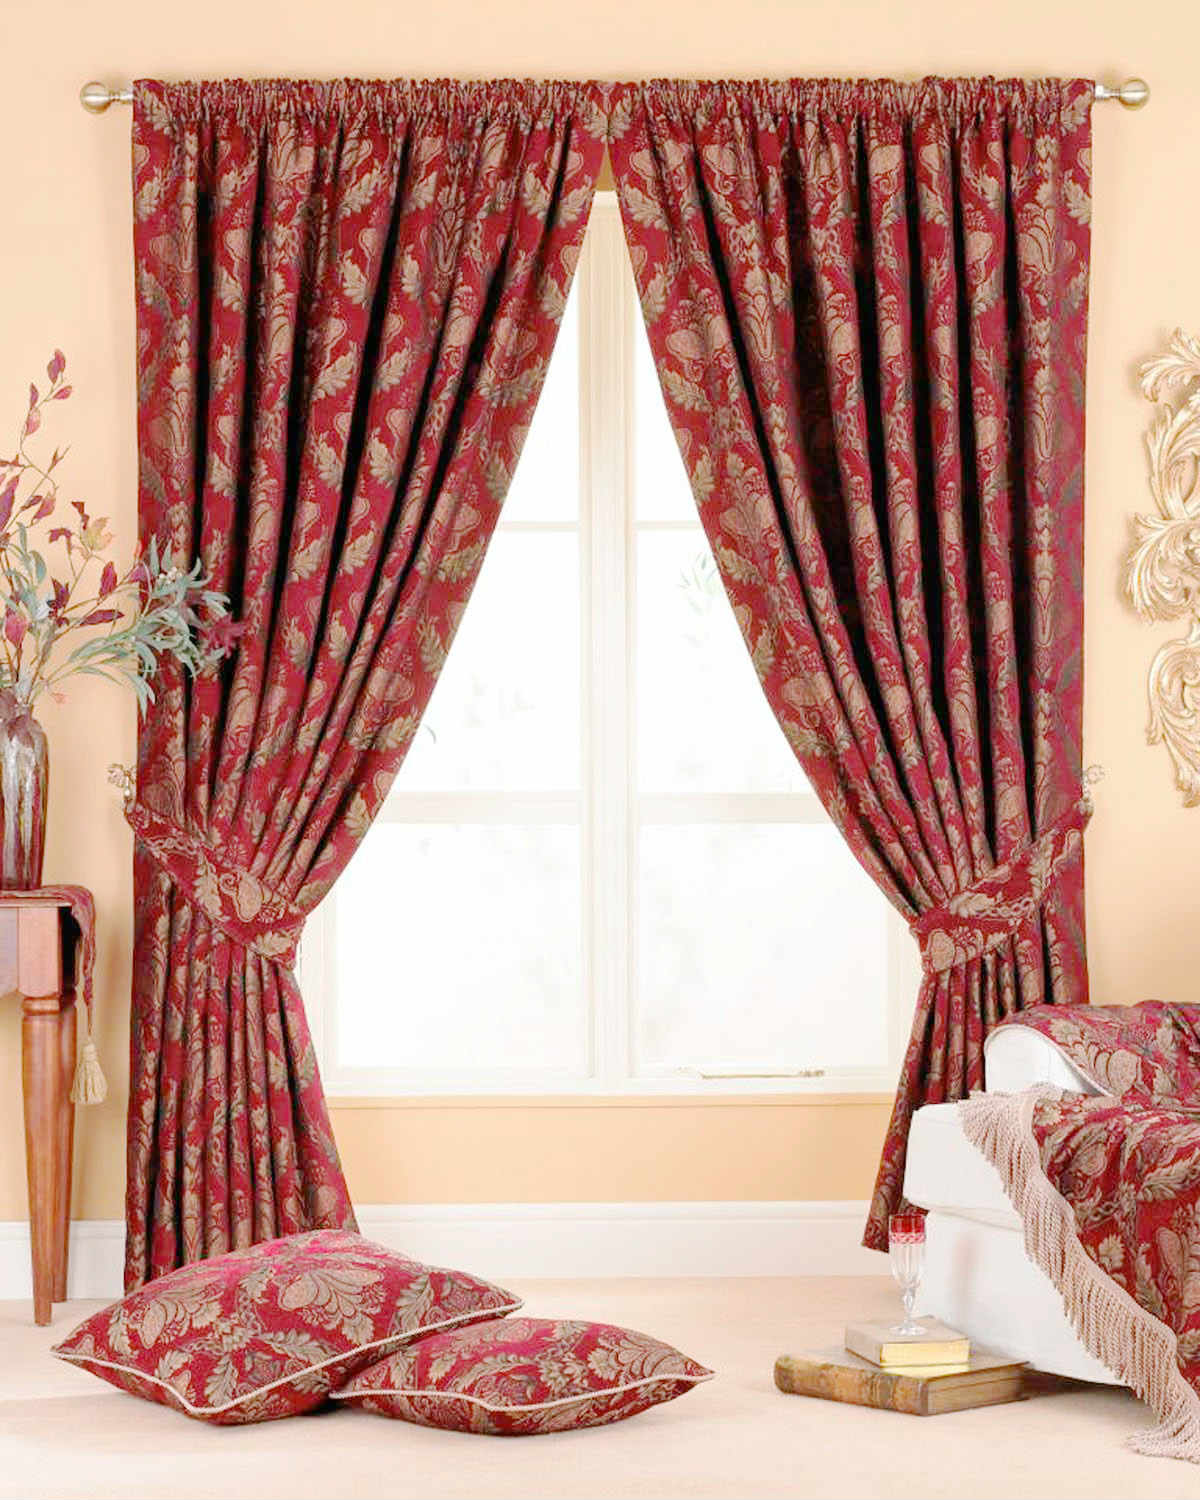 Shiraz Ready Made Curtains. Shriaz Ready Made Curtains Burgundy   Free UK Delivery   Terrys